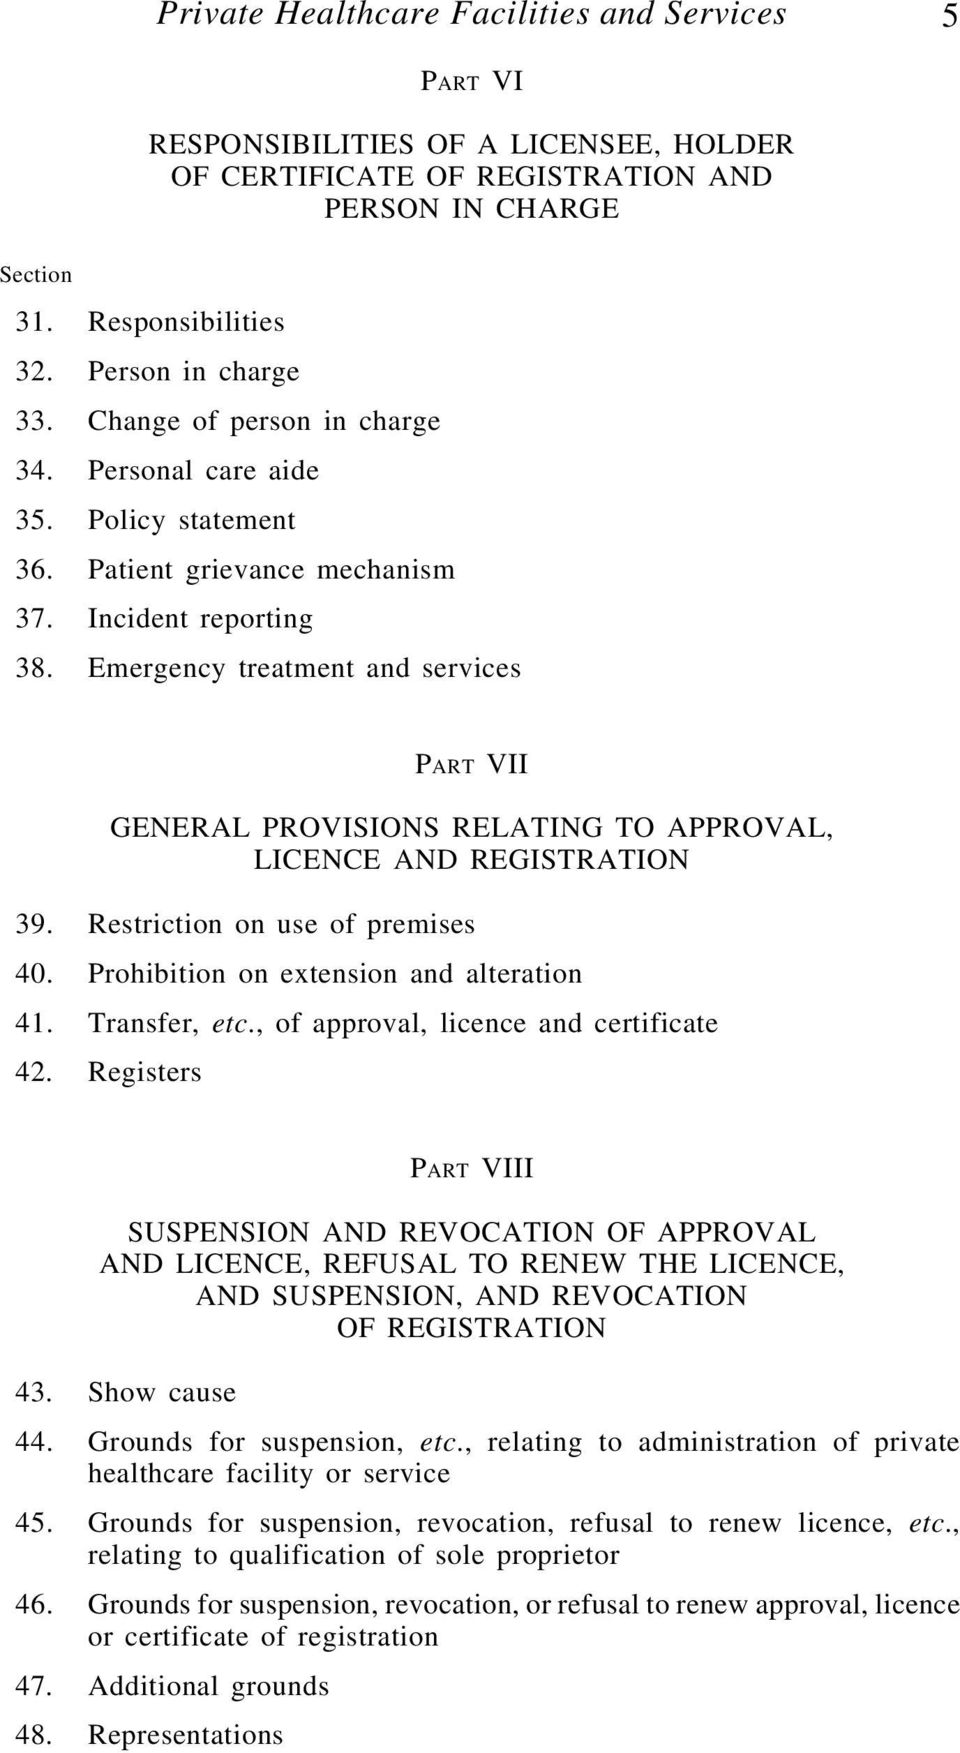 Emergency treatment and services PART VII GENERAL PROVISIONS RELATING TO APPROVAL, LICENCE AND REGISTRATION 39. Restriction on use of premises 40. Prohibition on extension and alteration 41.